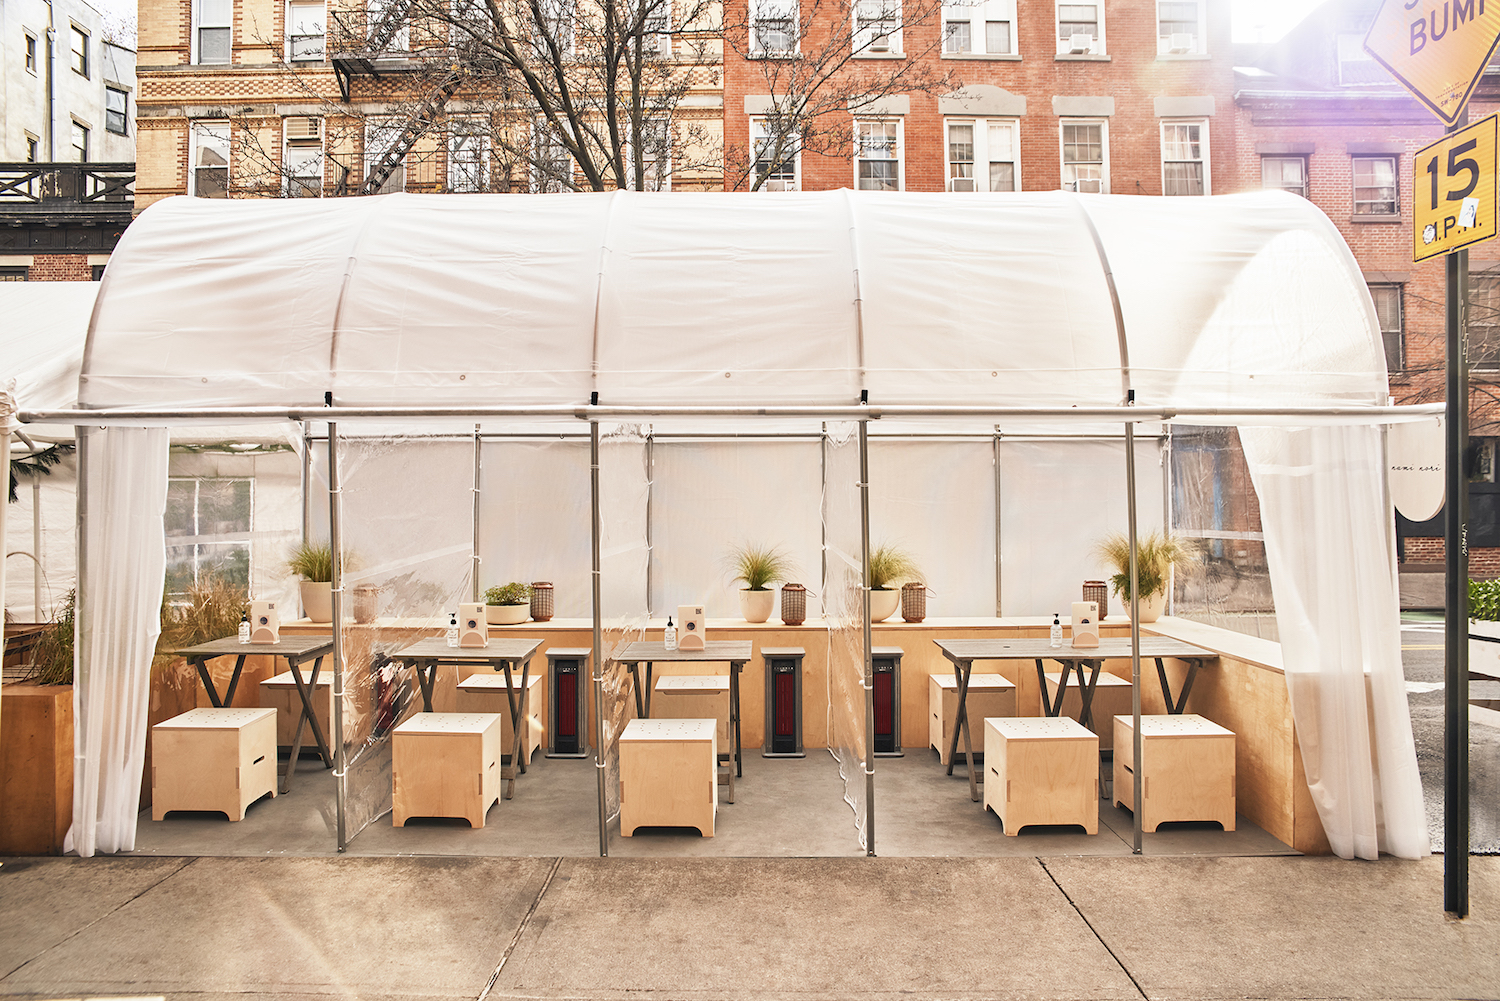 The exterior of Nami Nori which has a semi circular tent covering tables and chairs